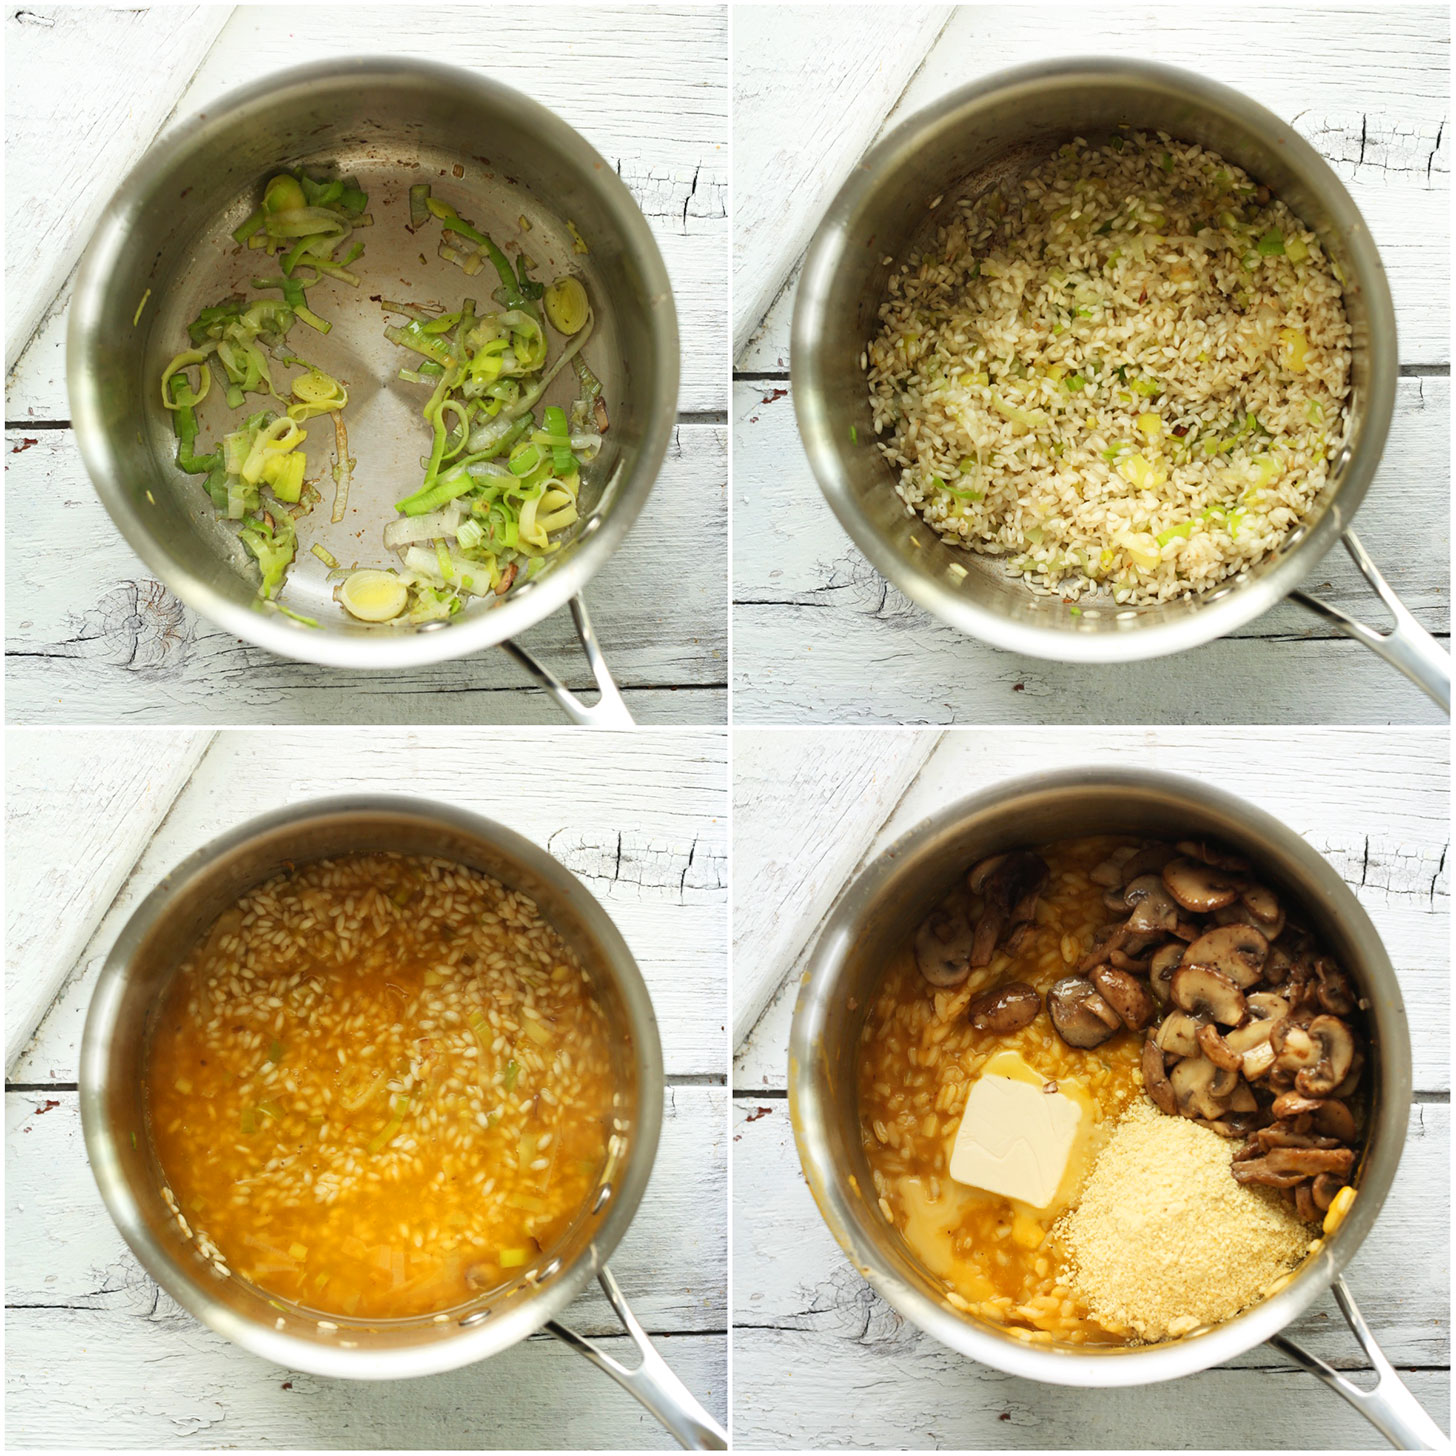 Photos showing steps for making gluten-free vegan Risotto with Mushrooms and Leeks